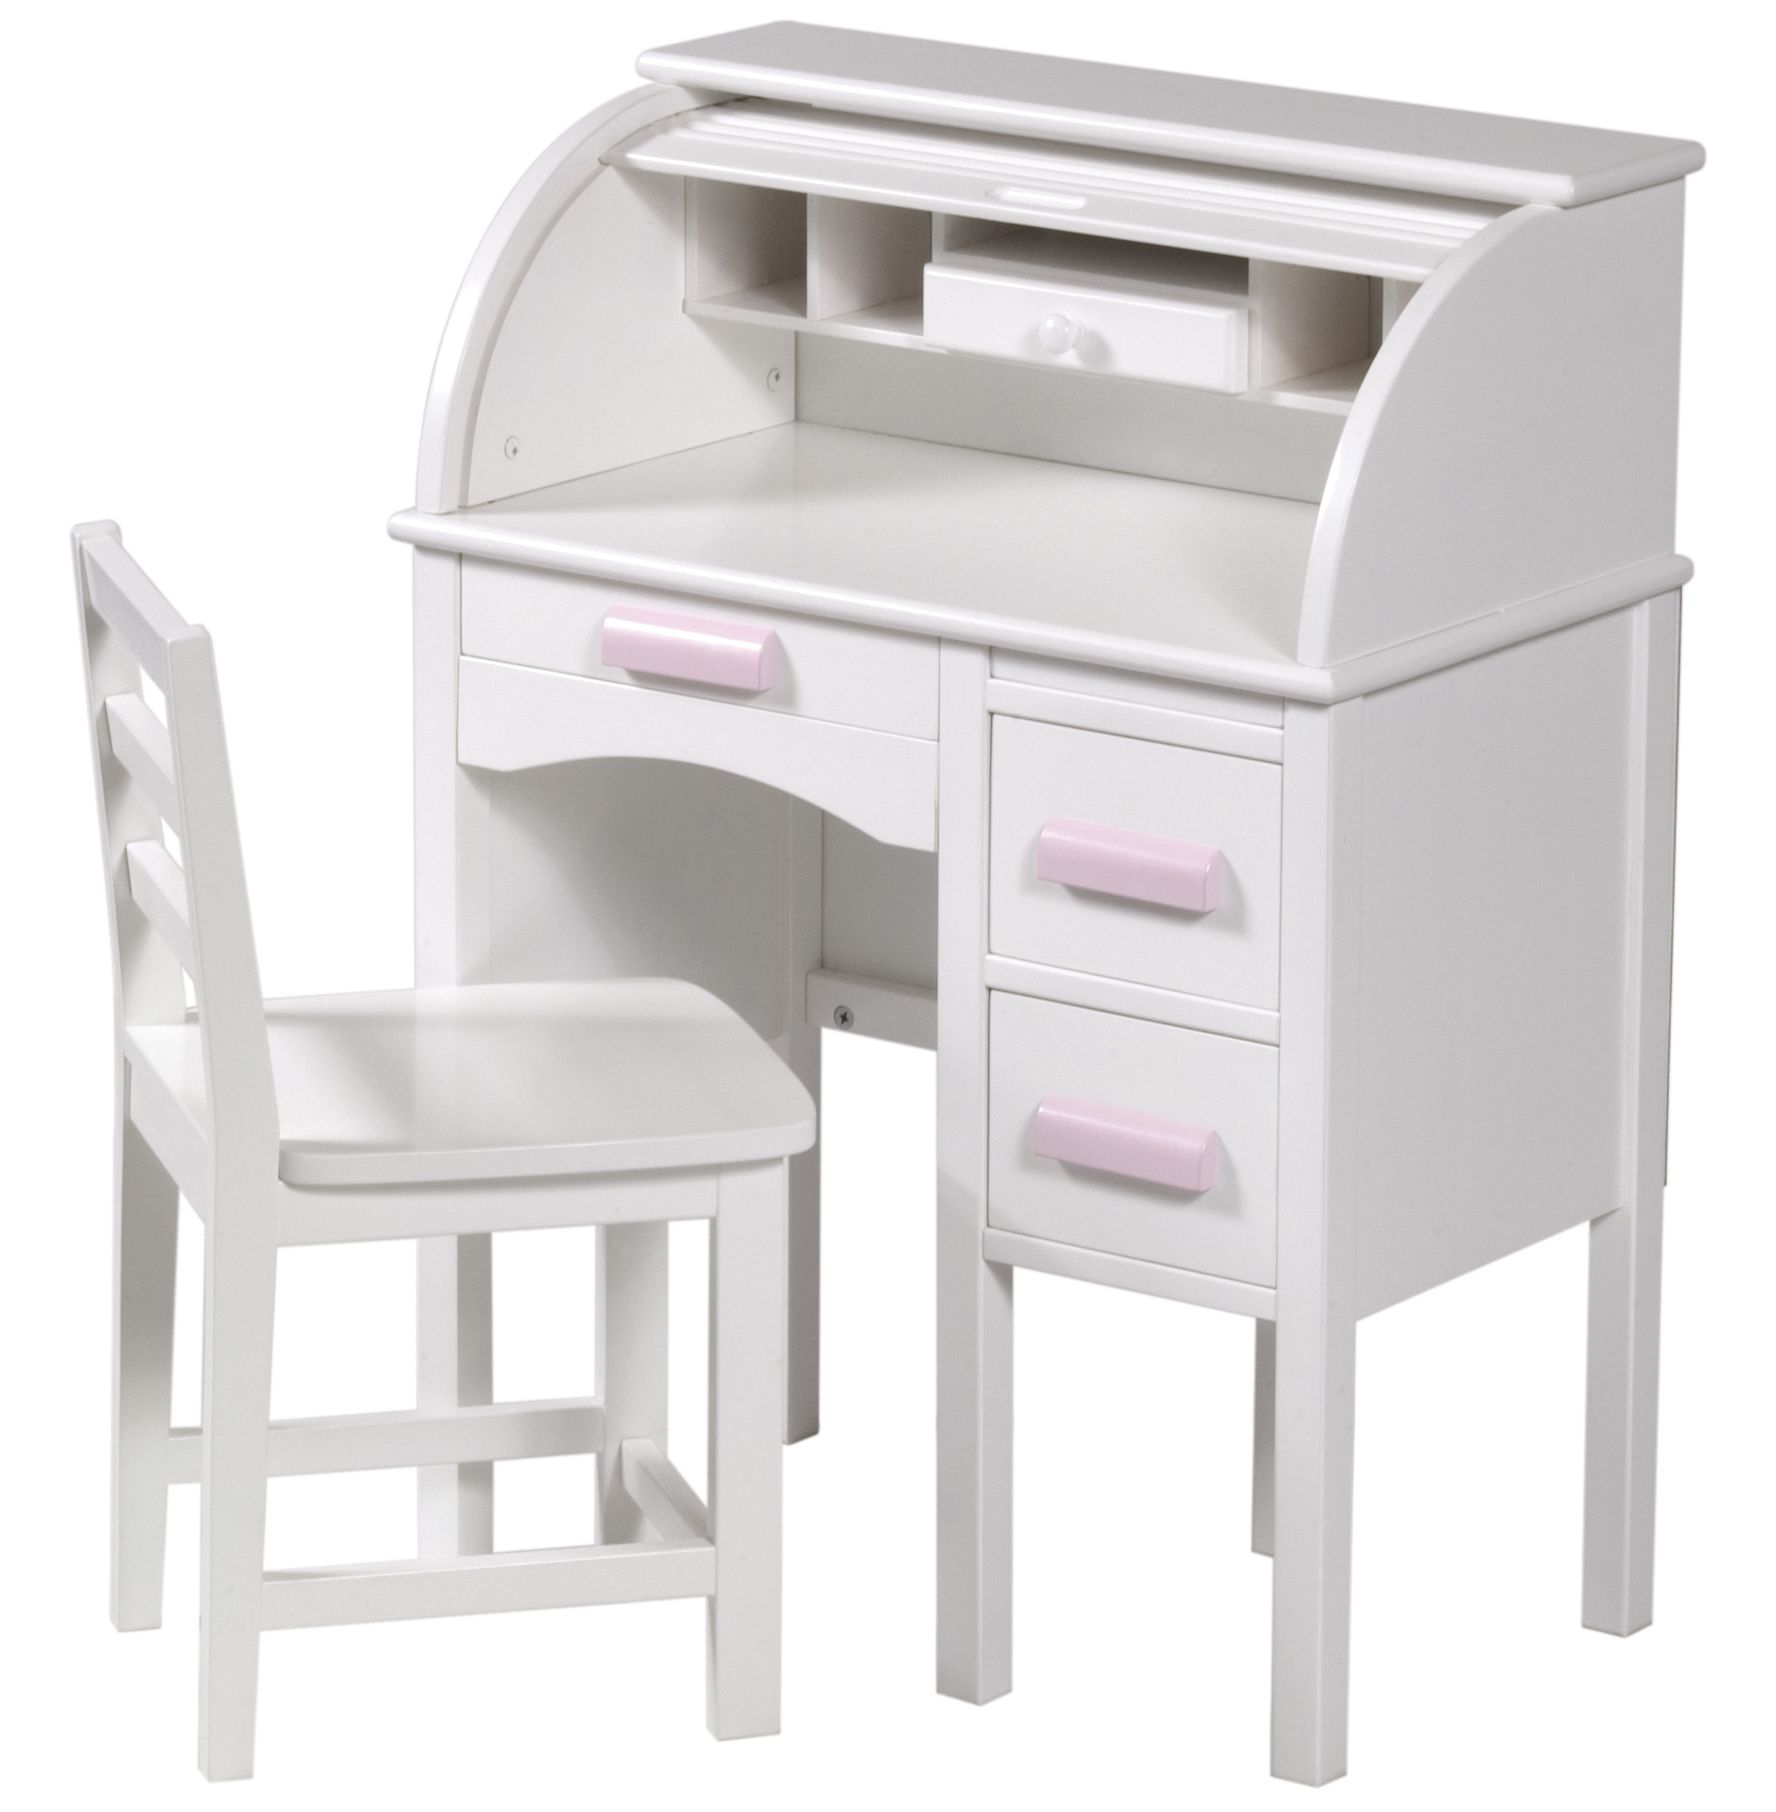 childrens desks guidecraft jr rolltop desk white CCFUVON